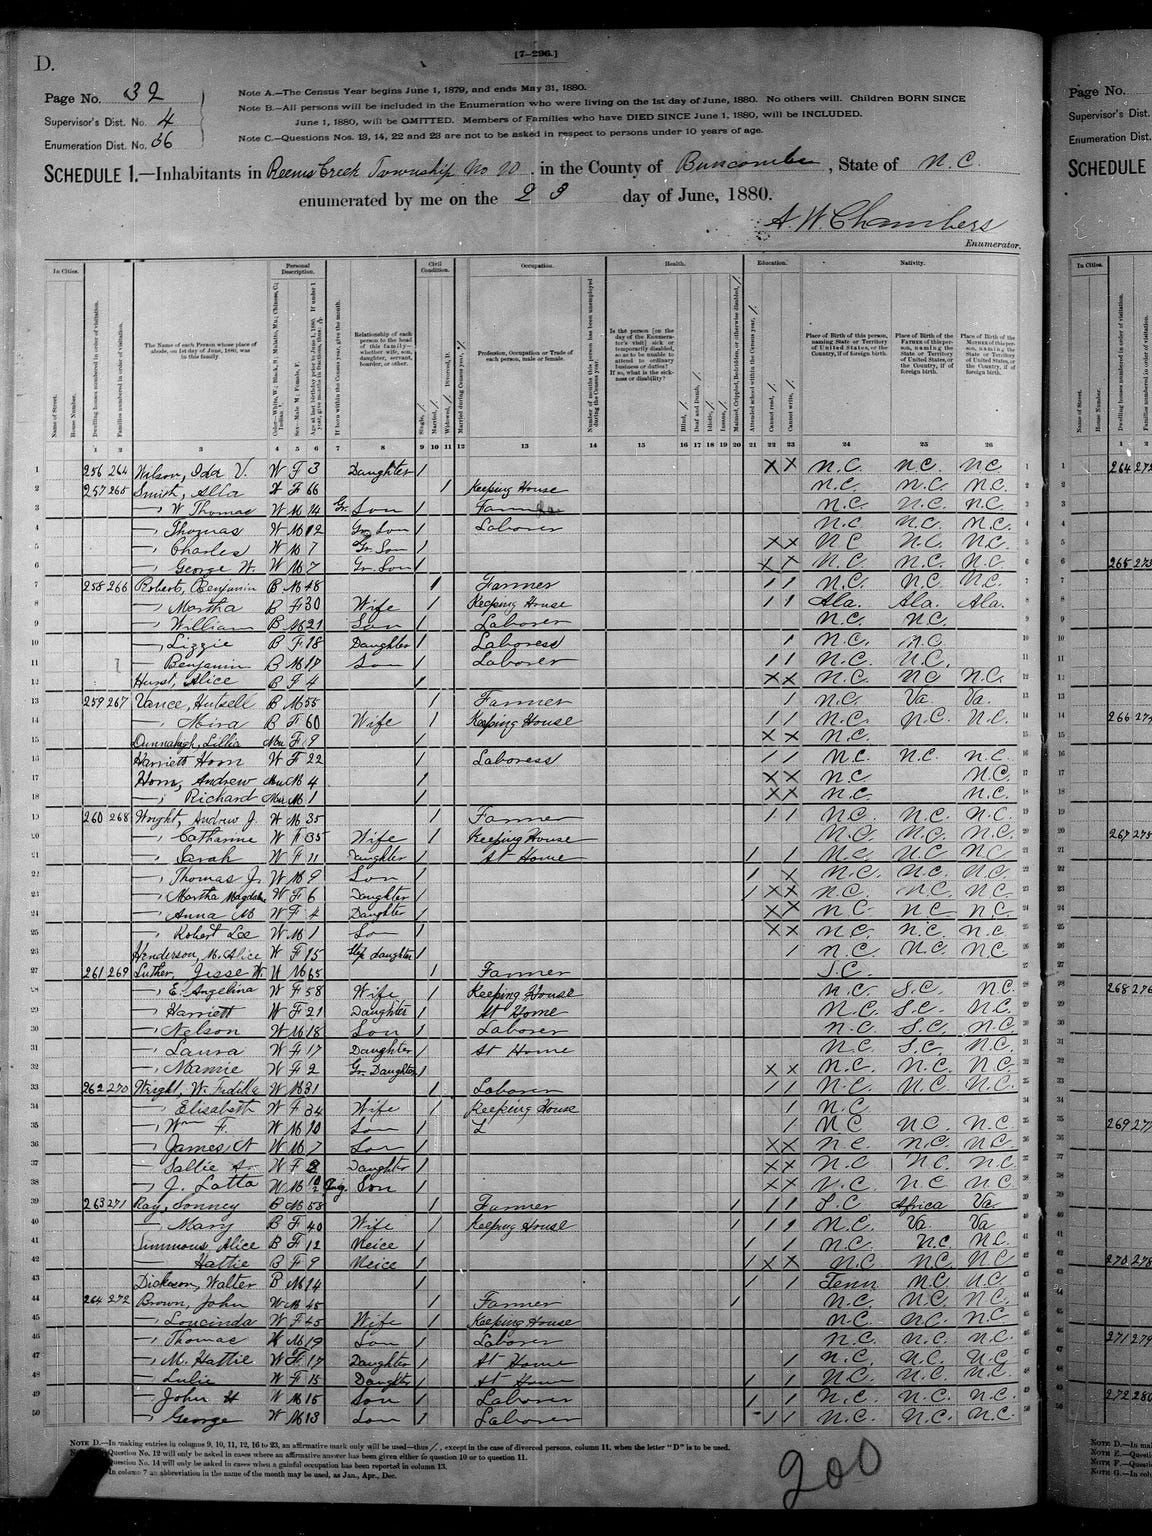 Records from an 1880 Census show that named Hudson